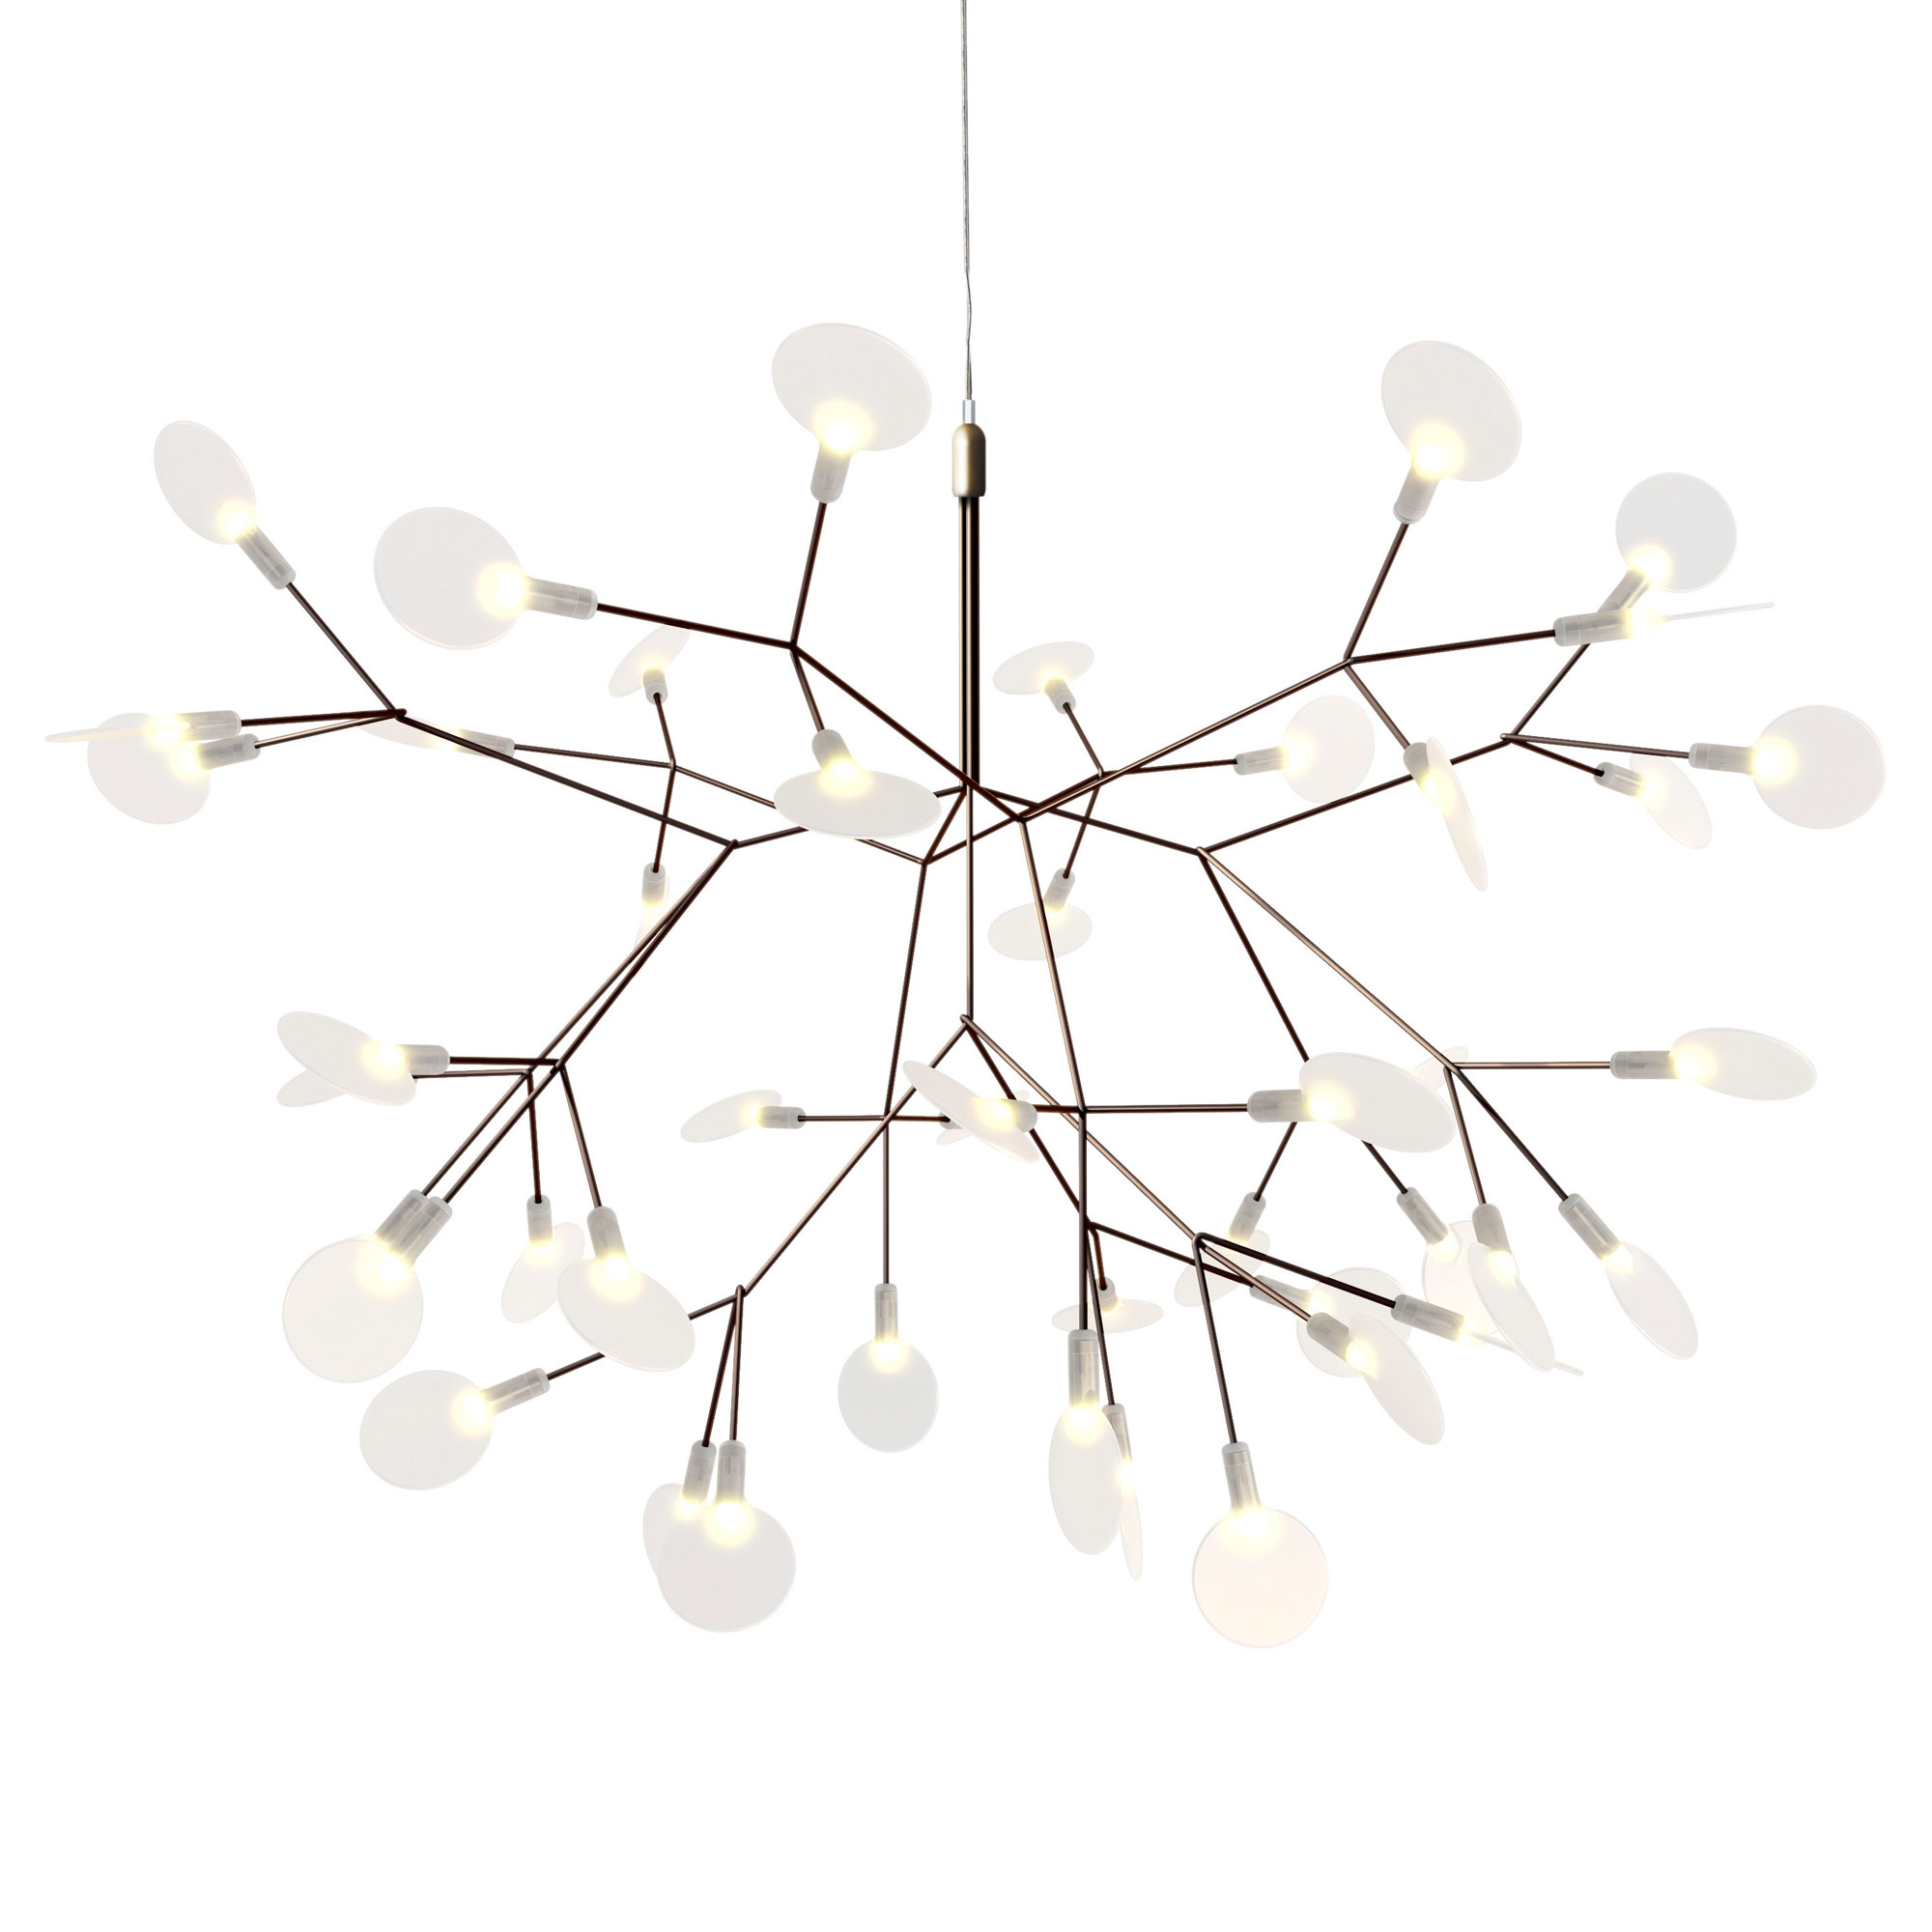 Teppich Ikea Riecht Moooi Heracleum Gt Gt Moooi Heracleum Ii Small Suspension L